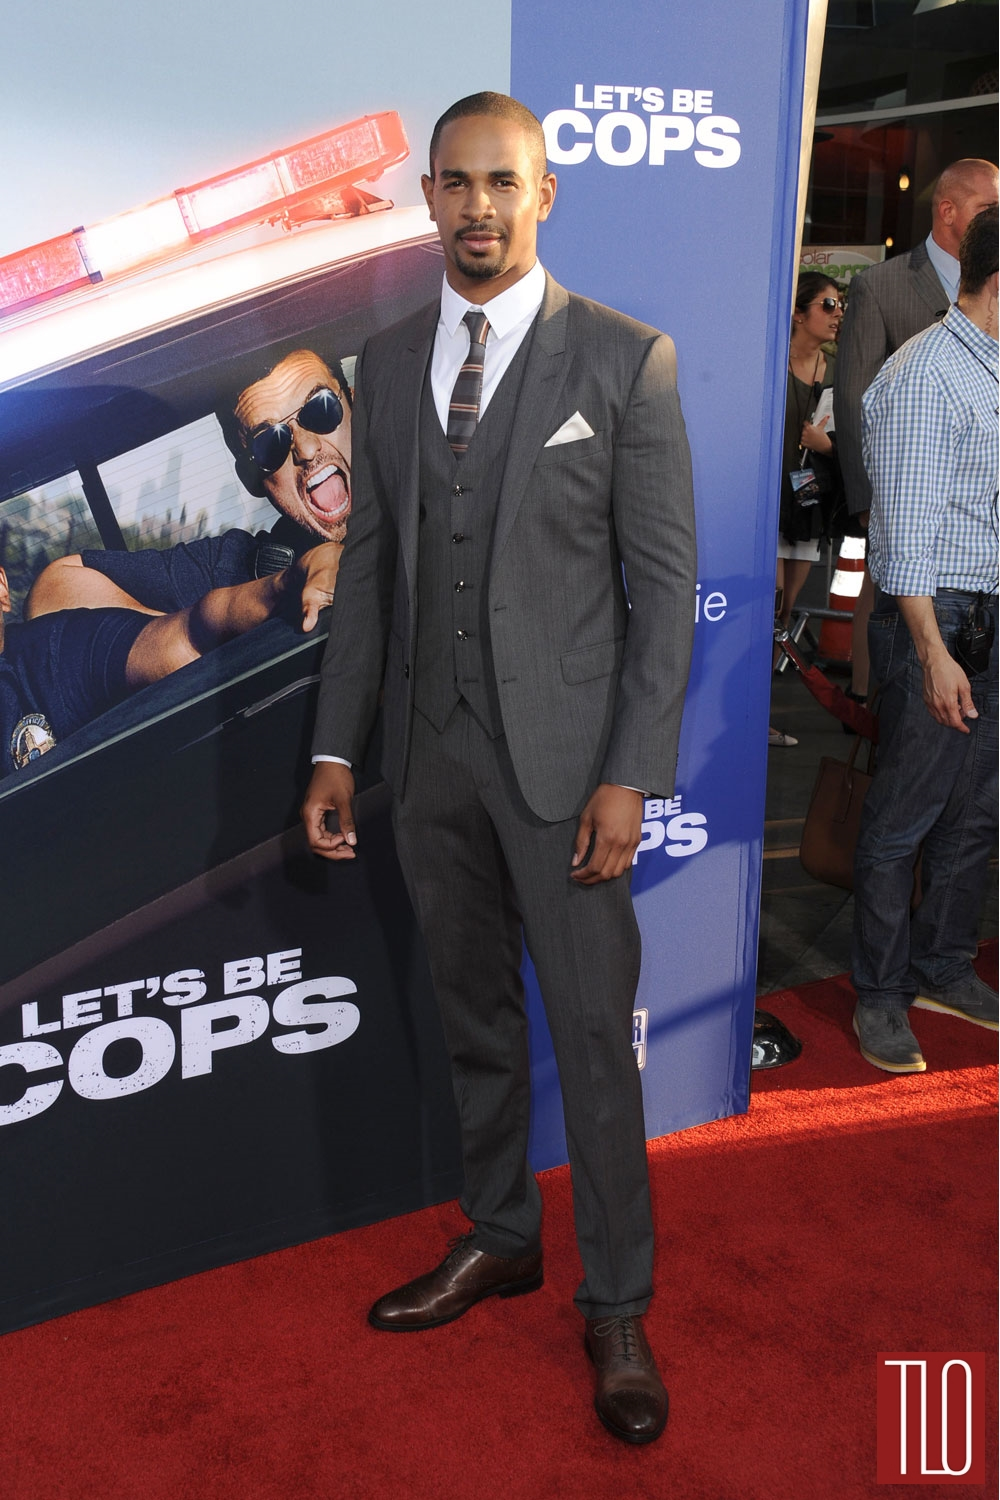 Damon-Wayans-Jr-Dolce-Gabbana-Lets-Be-Cops-Los-Angeles-Movie-Premiere-Tom-Lorenzo-Site-TLO (1)